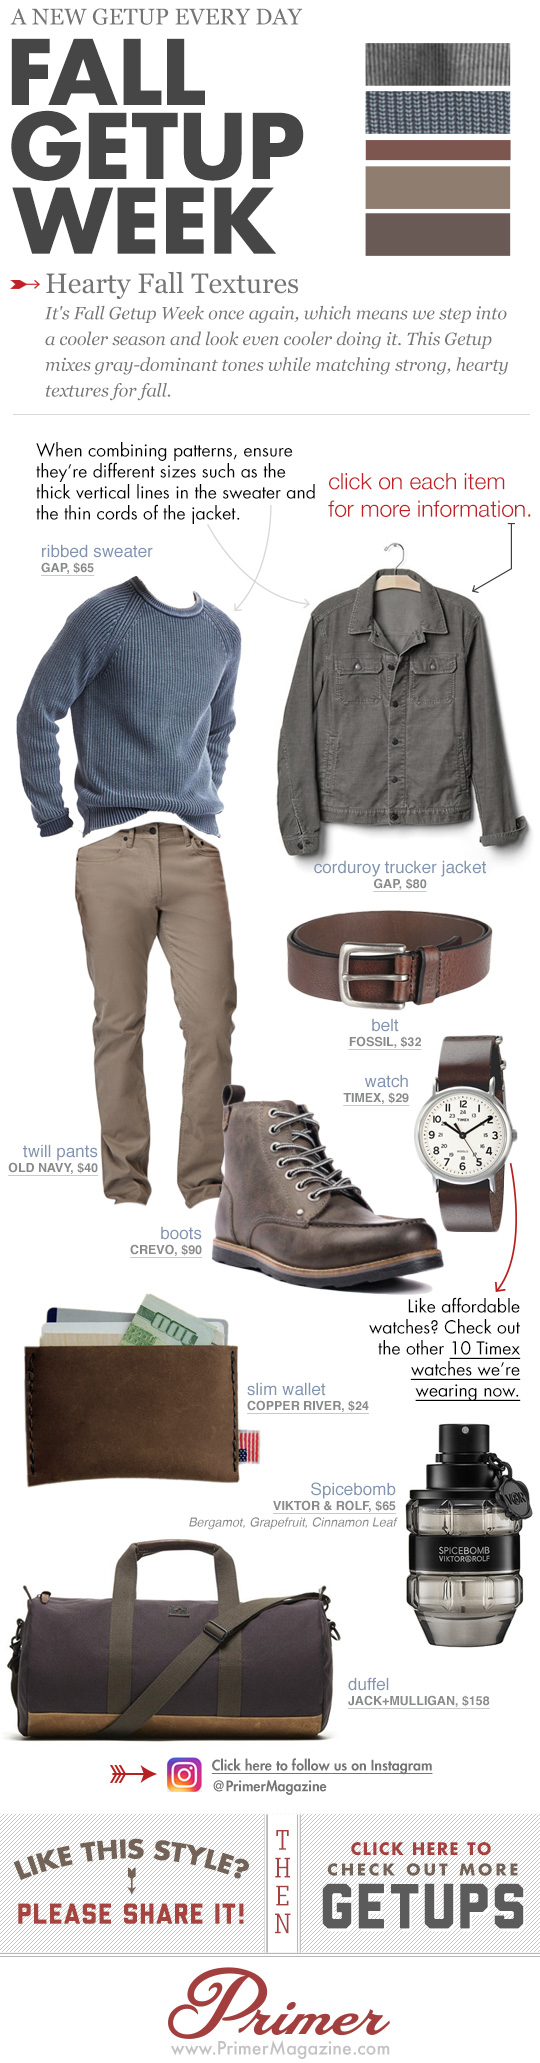 Fall Getup Week Hearty Fall Textures inspiration with blue sweater and brown boots